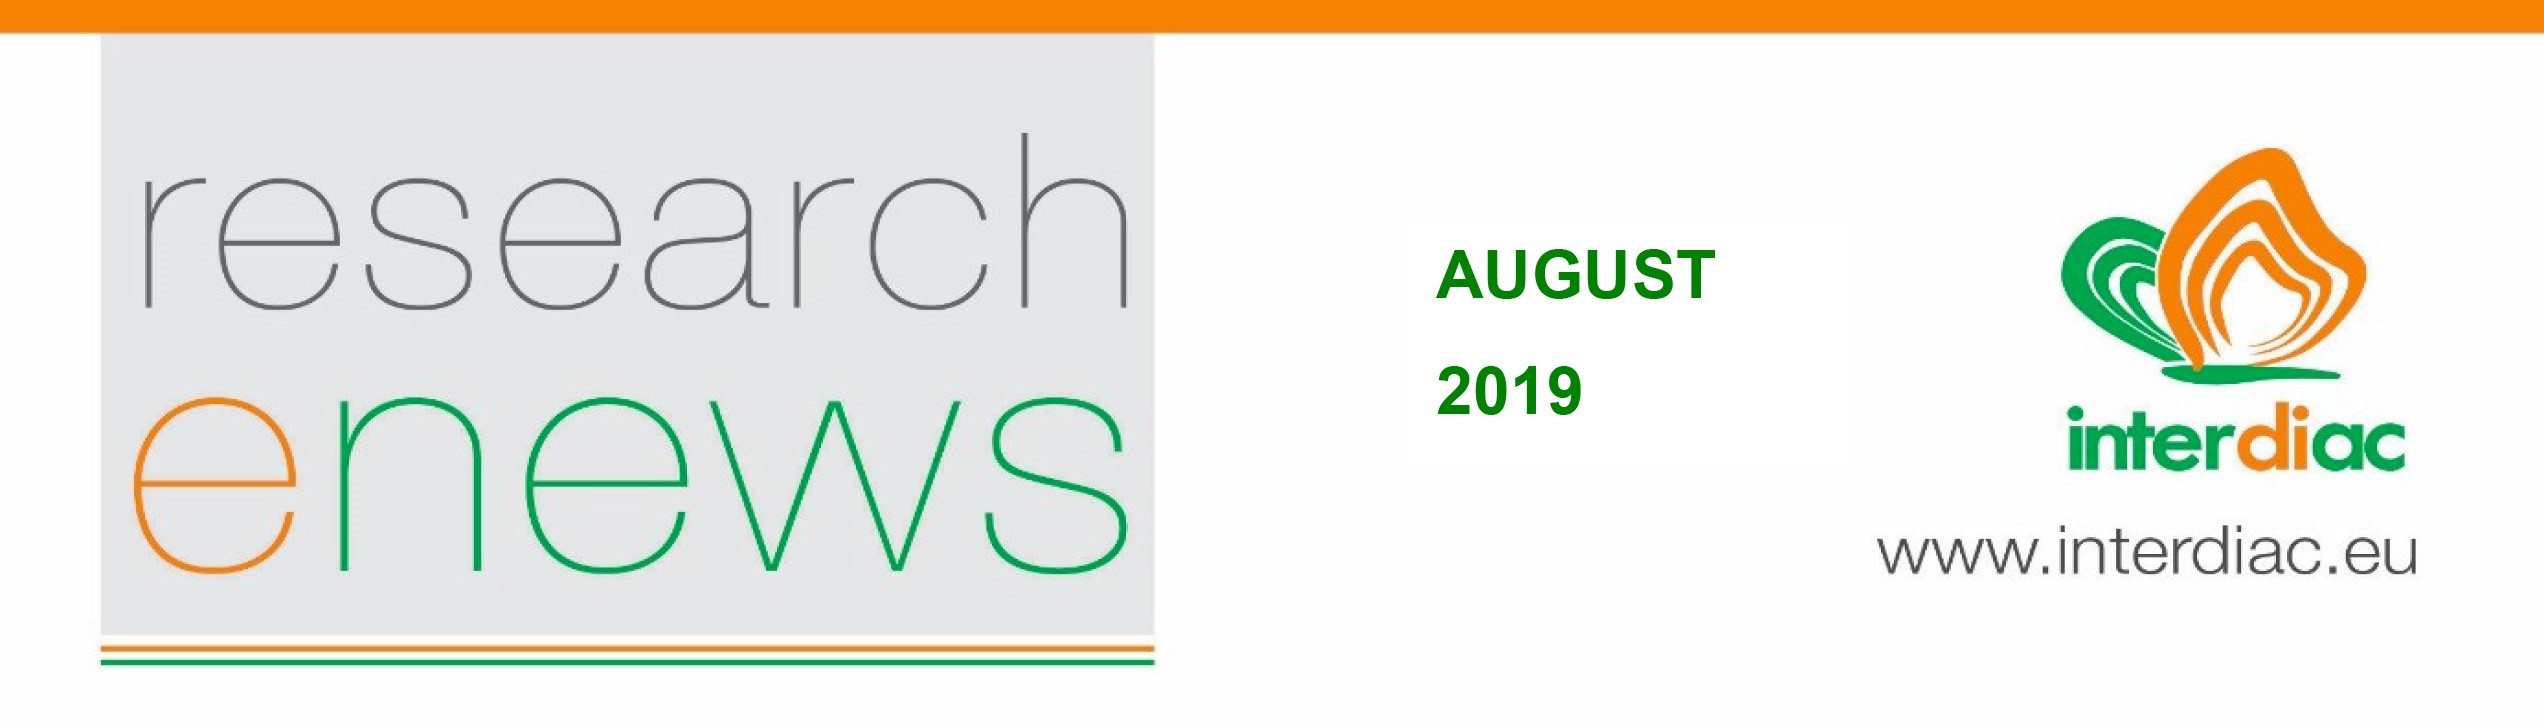 interdiac Research e-news August 2019